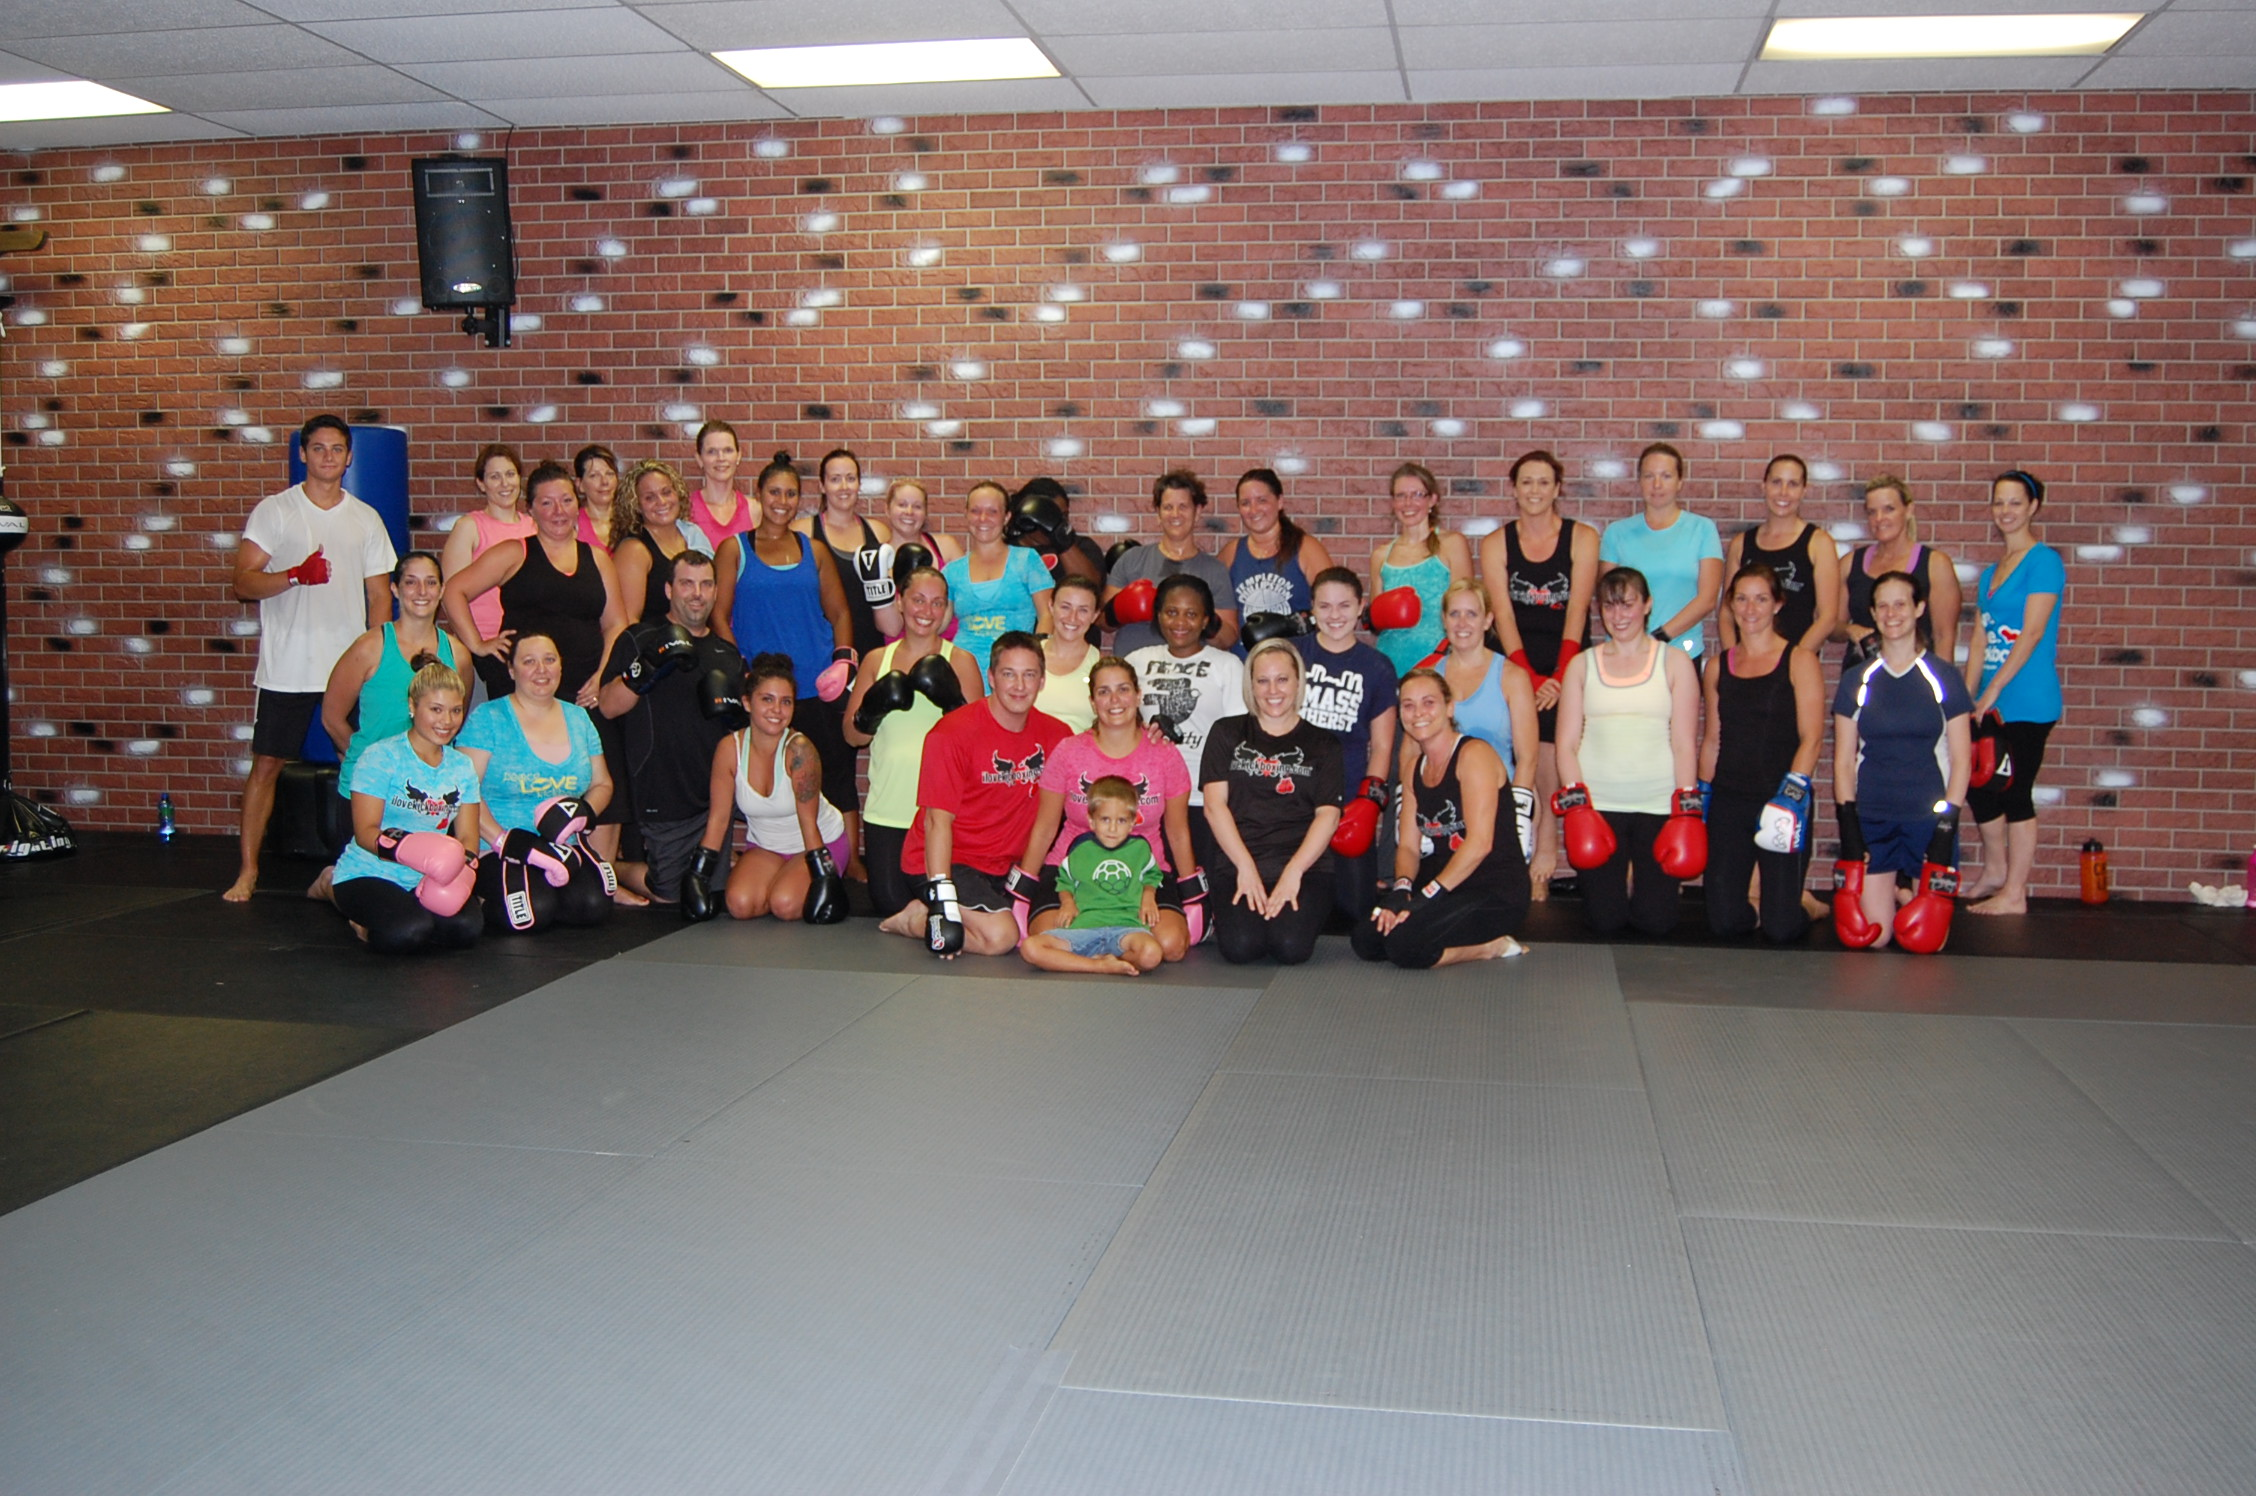 I Love Kickboxing - Fitchburg